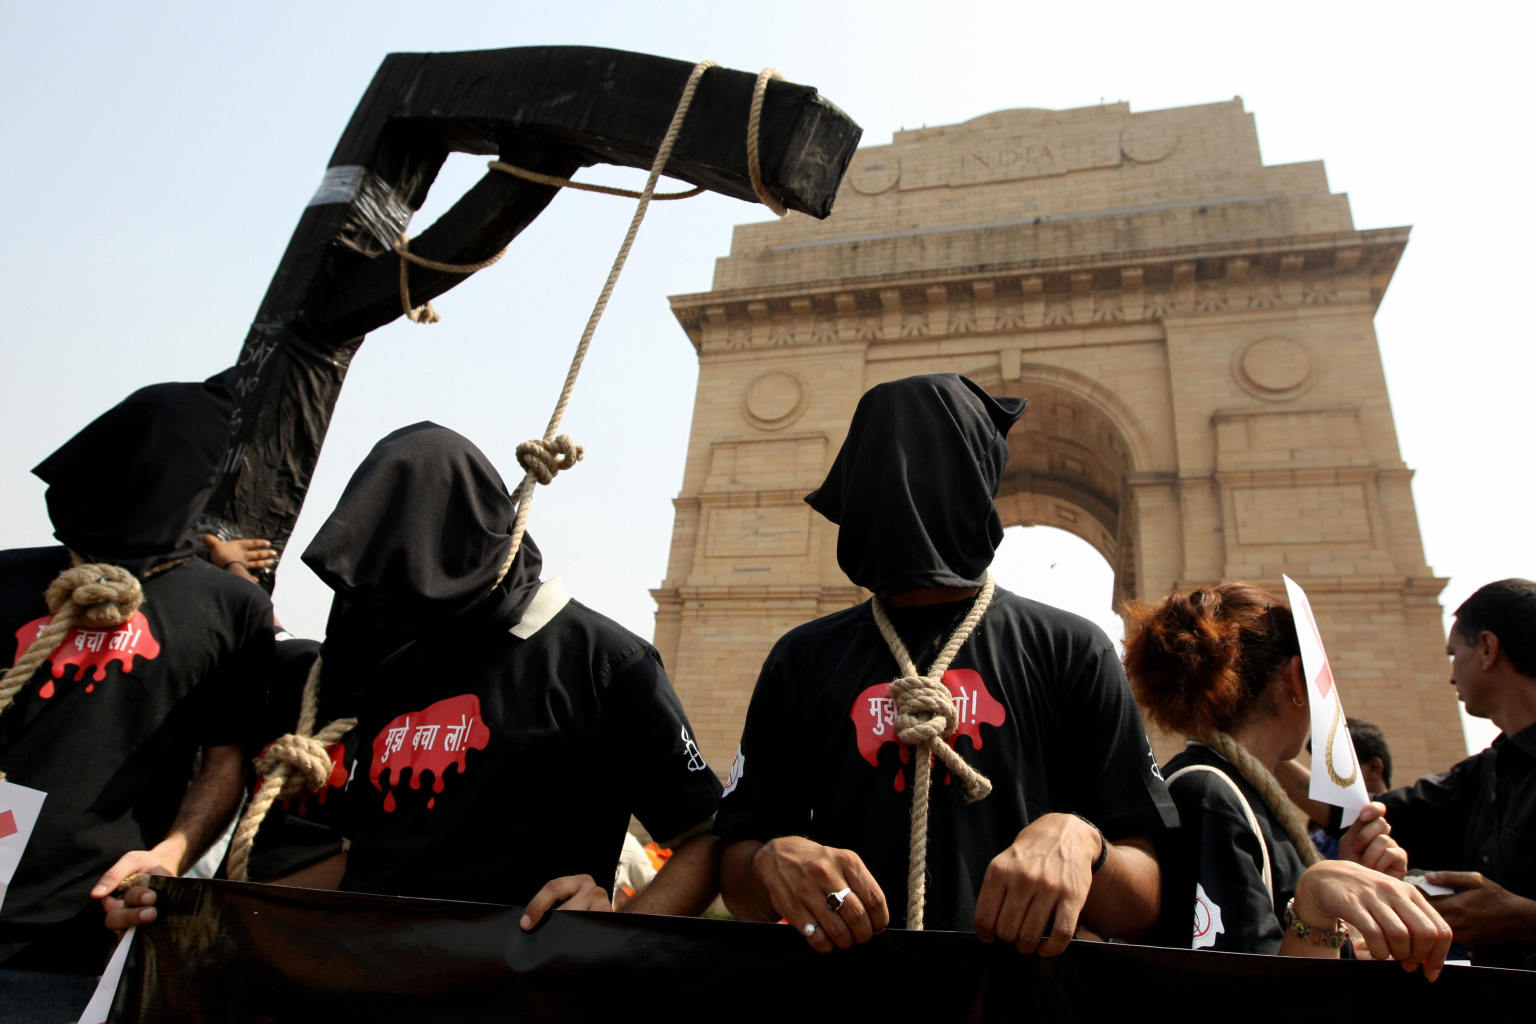 http://i.huffpost.com/gen/1351896/images/o-INDIA-DEATH-PENALTY-facebook.jpg